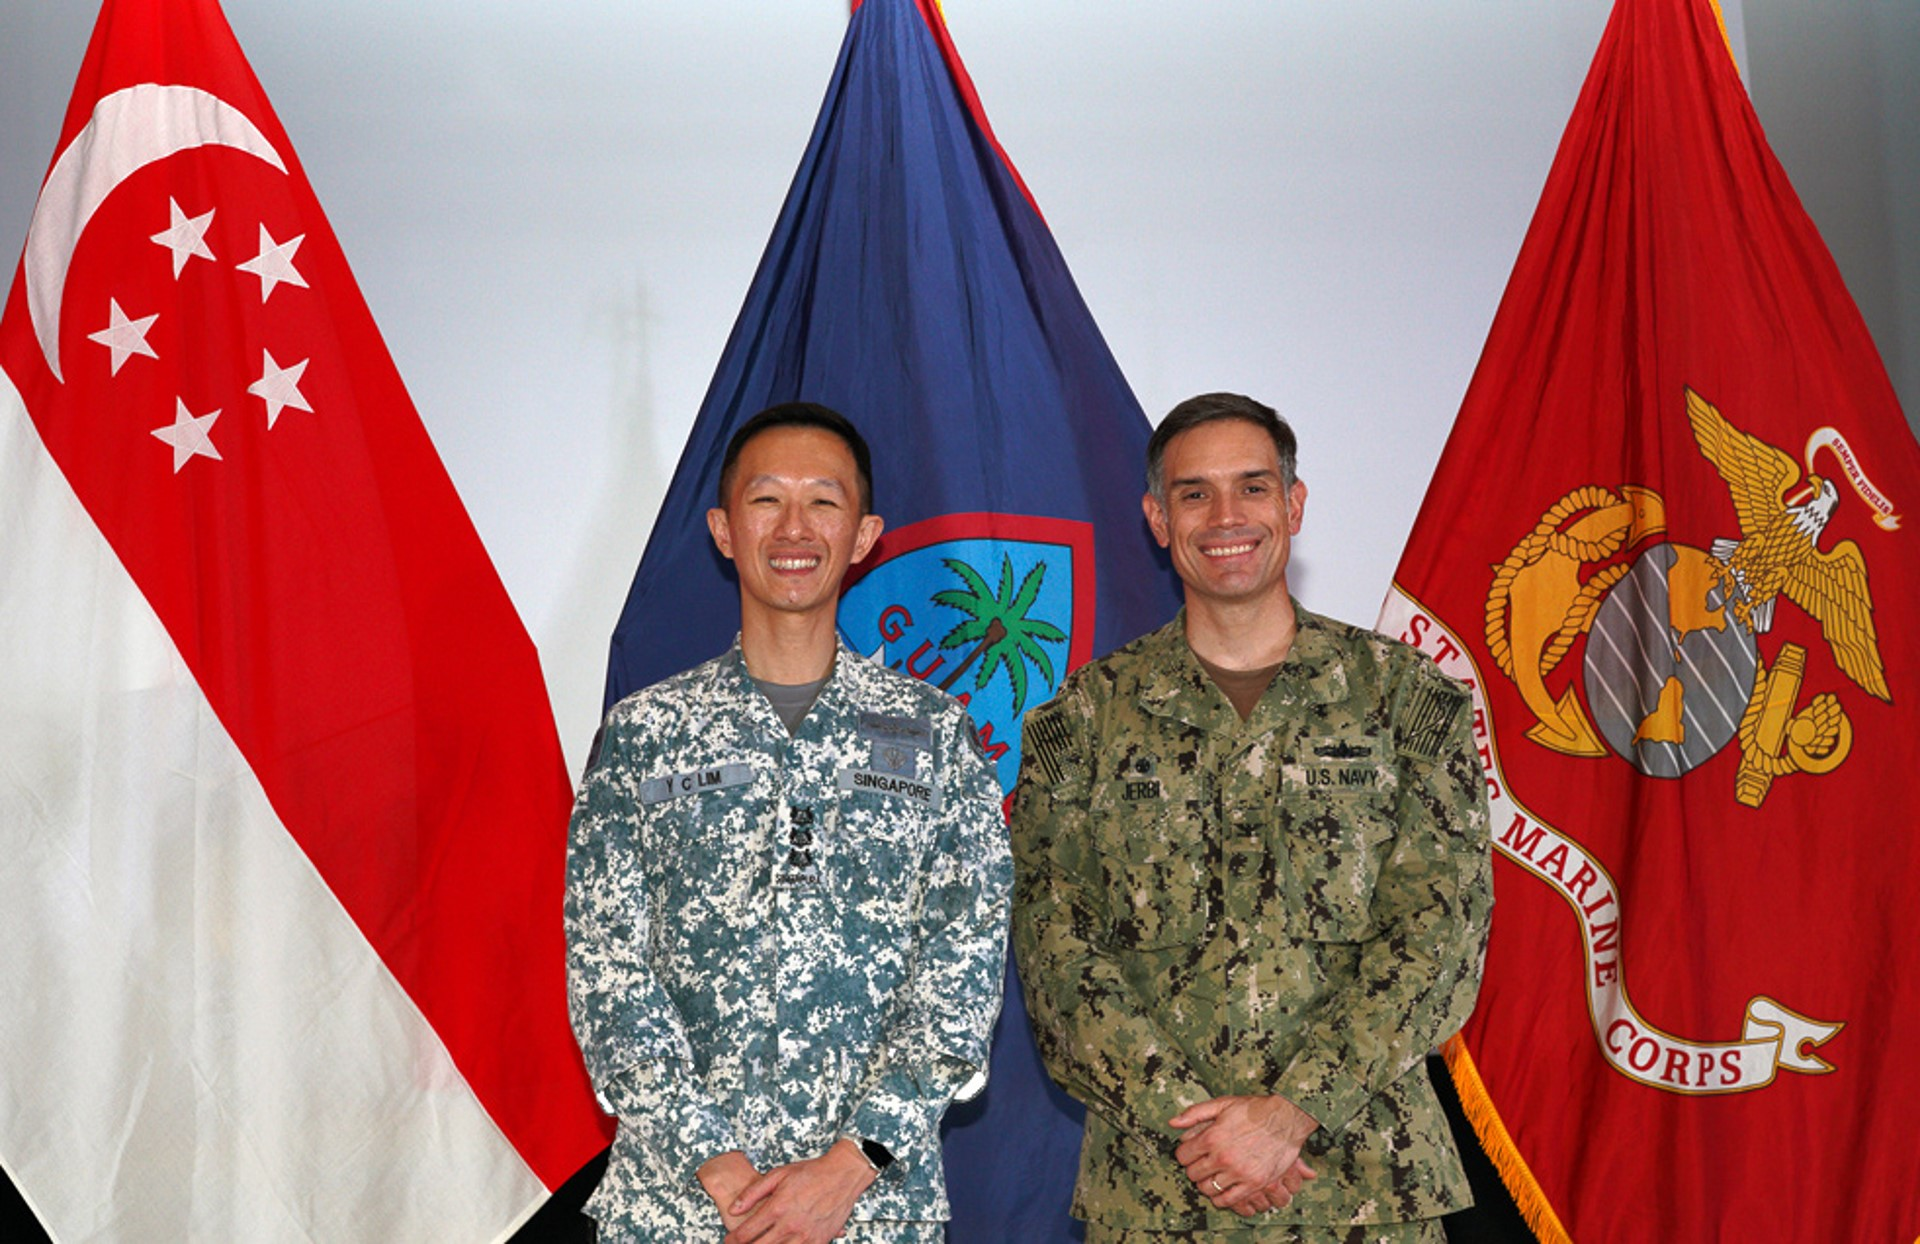 RSN Commander First Flotilla and Commanding Officer of 185 Squadron, Colonel Lim Yu Chuan (left) and USN Commodore of Destroyer Squadron 7, Captain Matthew J. Jerbi (right) officiating at the opening ceremony of Ex Pacific Griffin 2019.